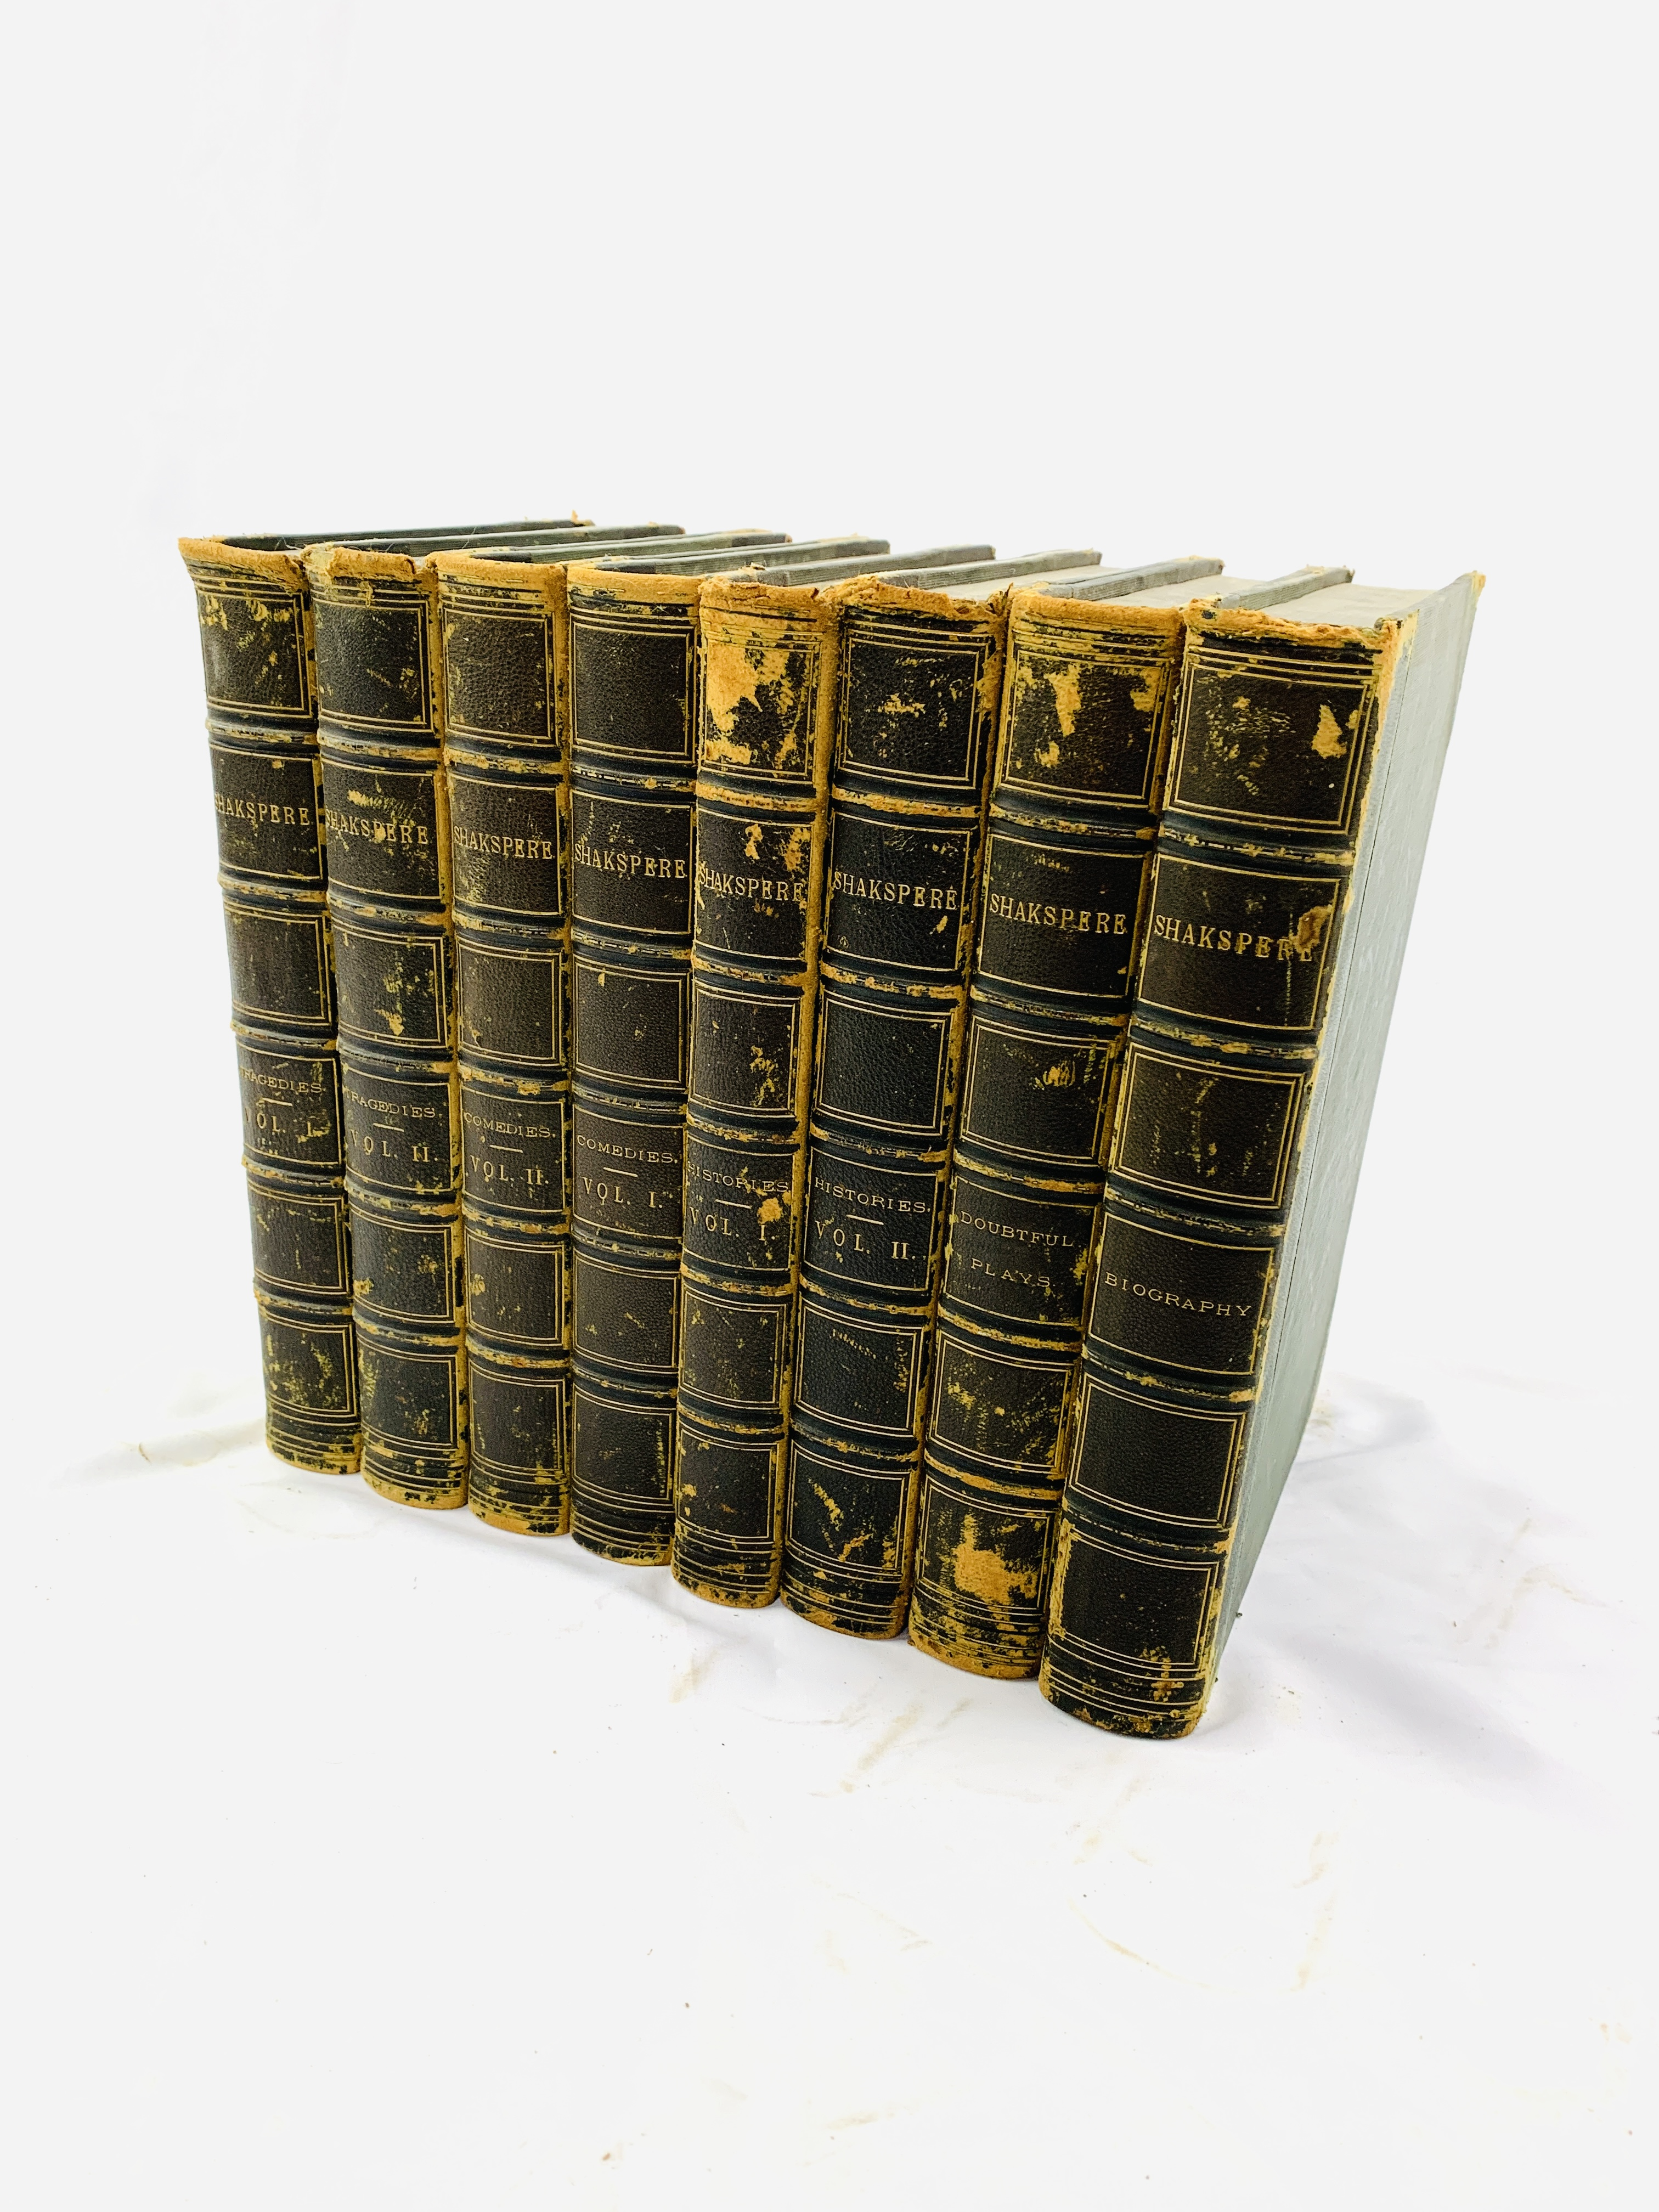 The Pictorial Edition of The Works of Shakespeare, edited by Charles Knight, 8 volumes, 1867